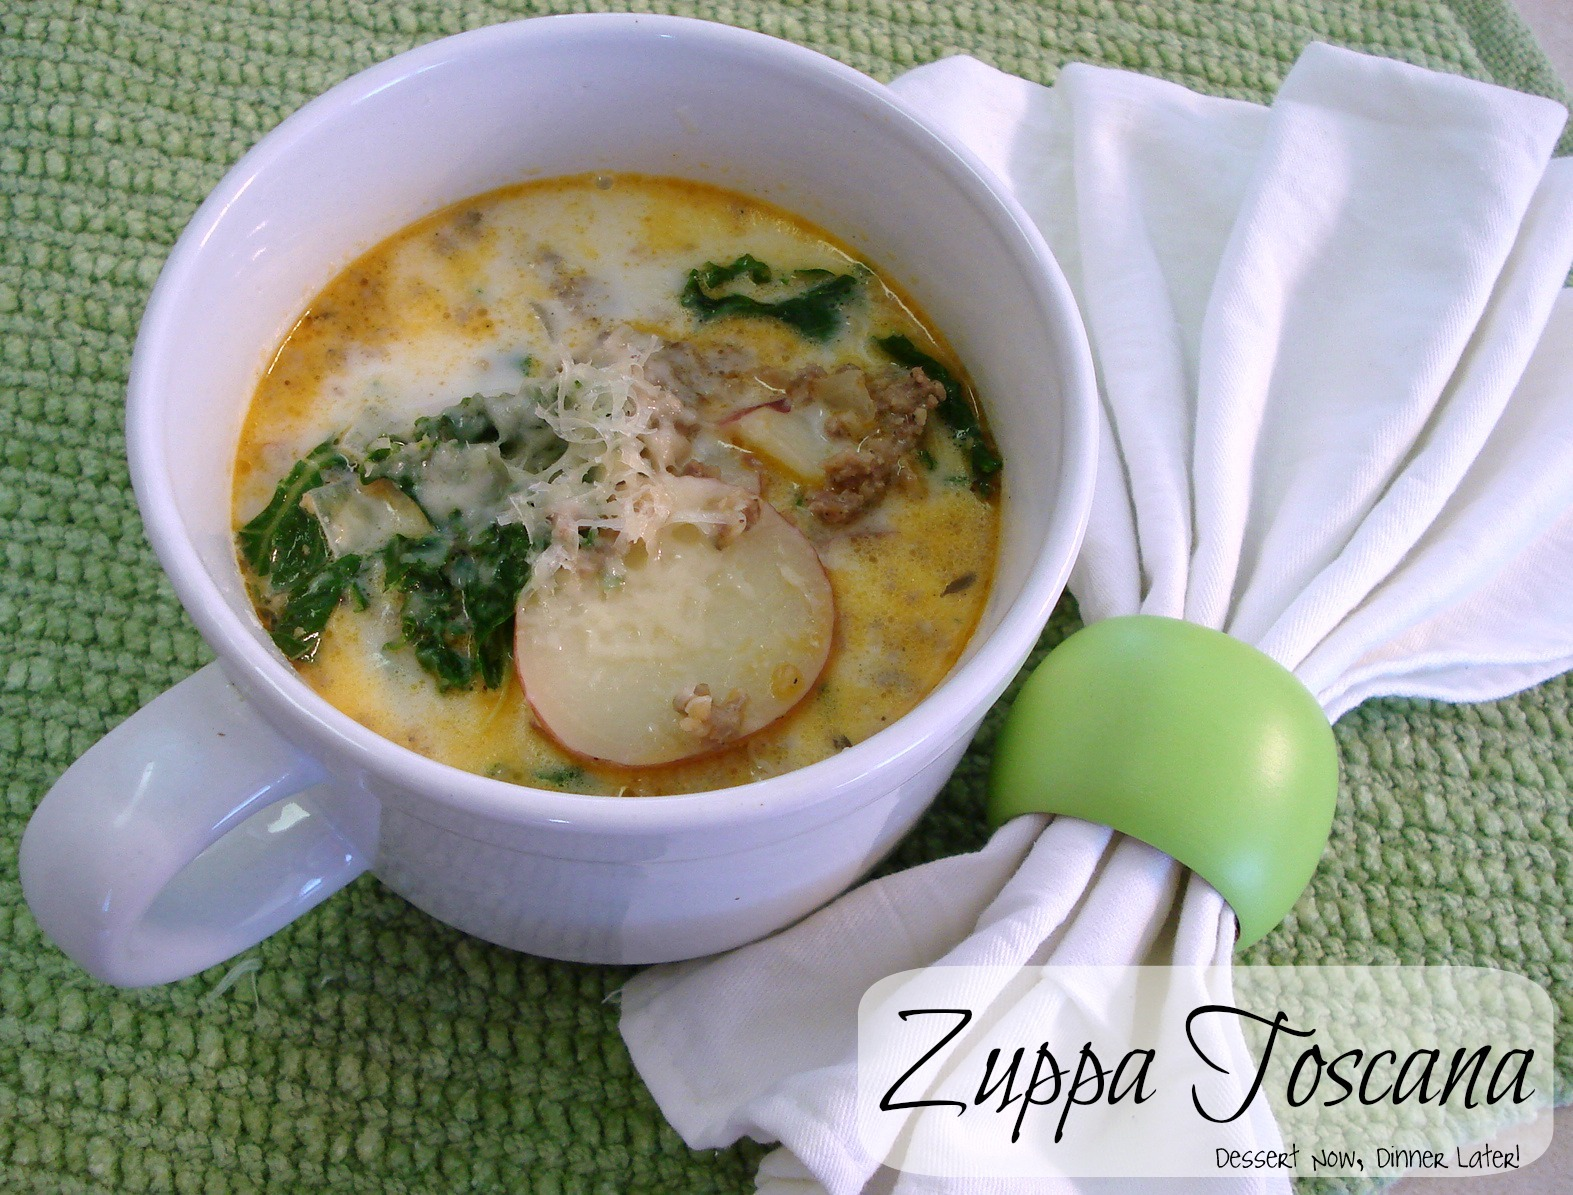 Zuppa Toscana - Dessert Now, Dinner Later!